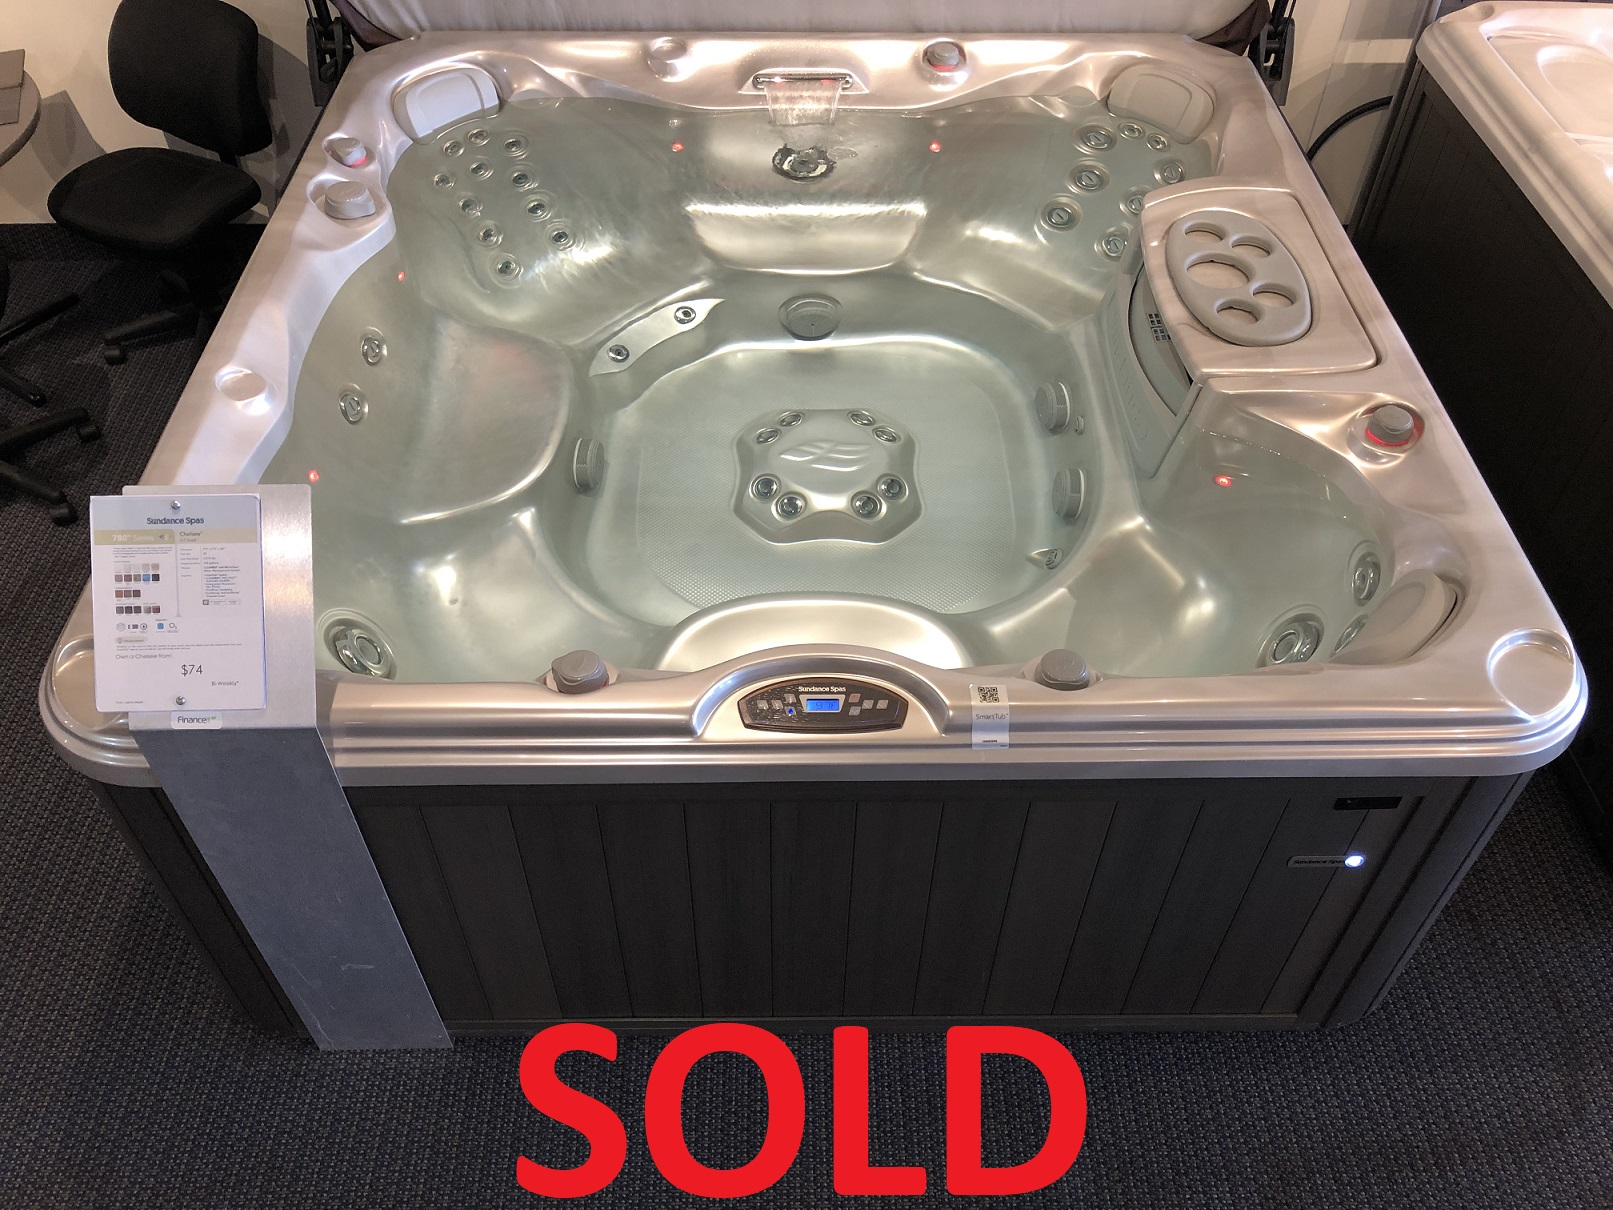 Sundance Spas Chelsee 7 person hot tub hot tubs near me St Catharines Niagara Ontario